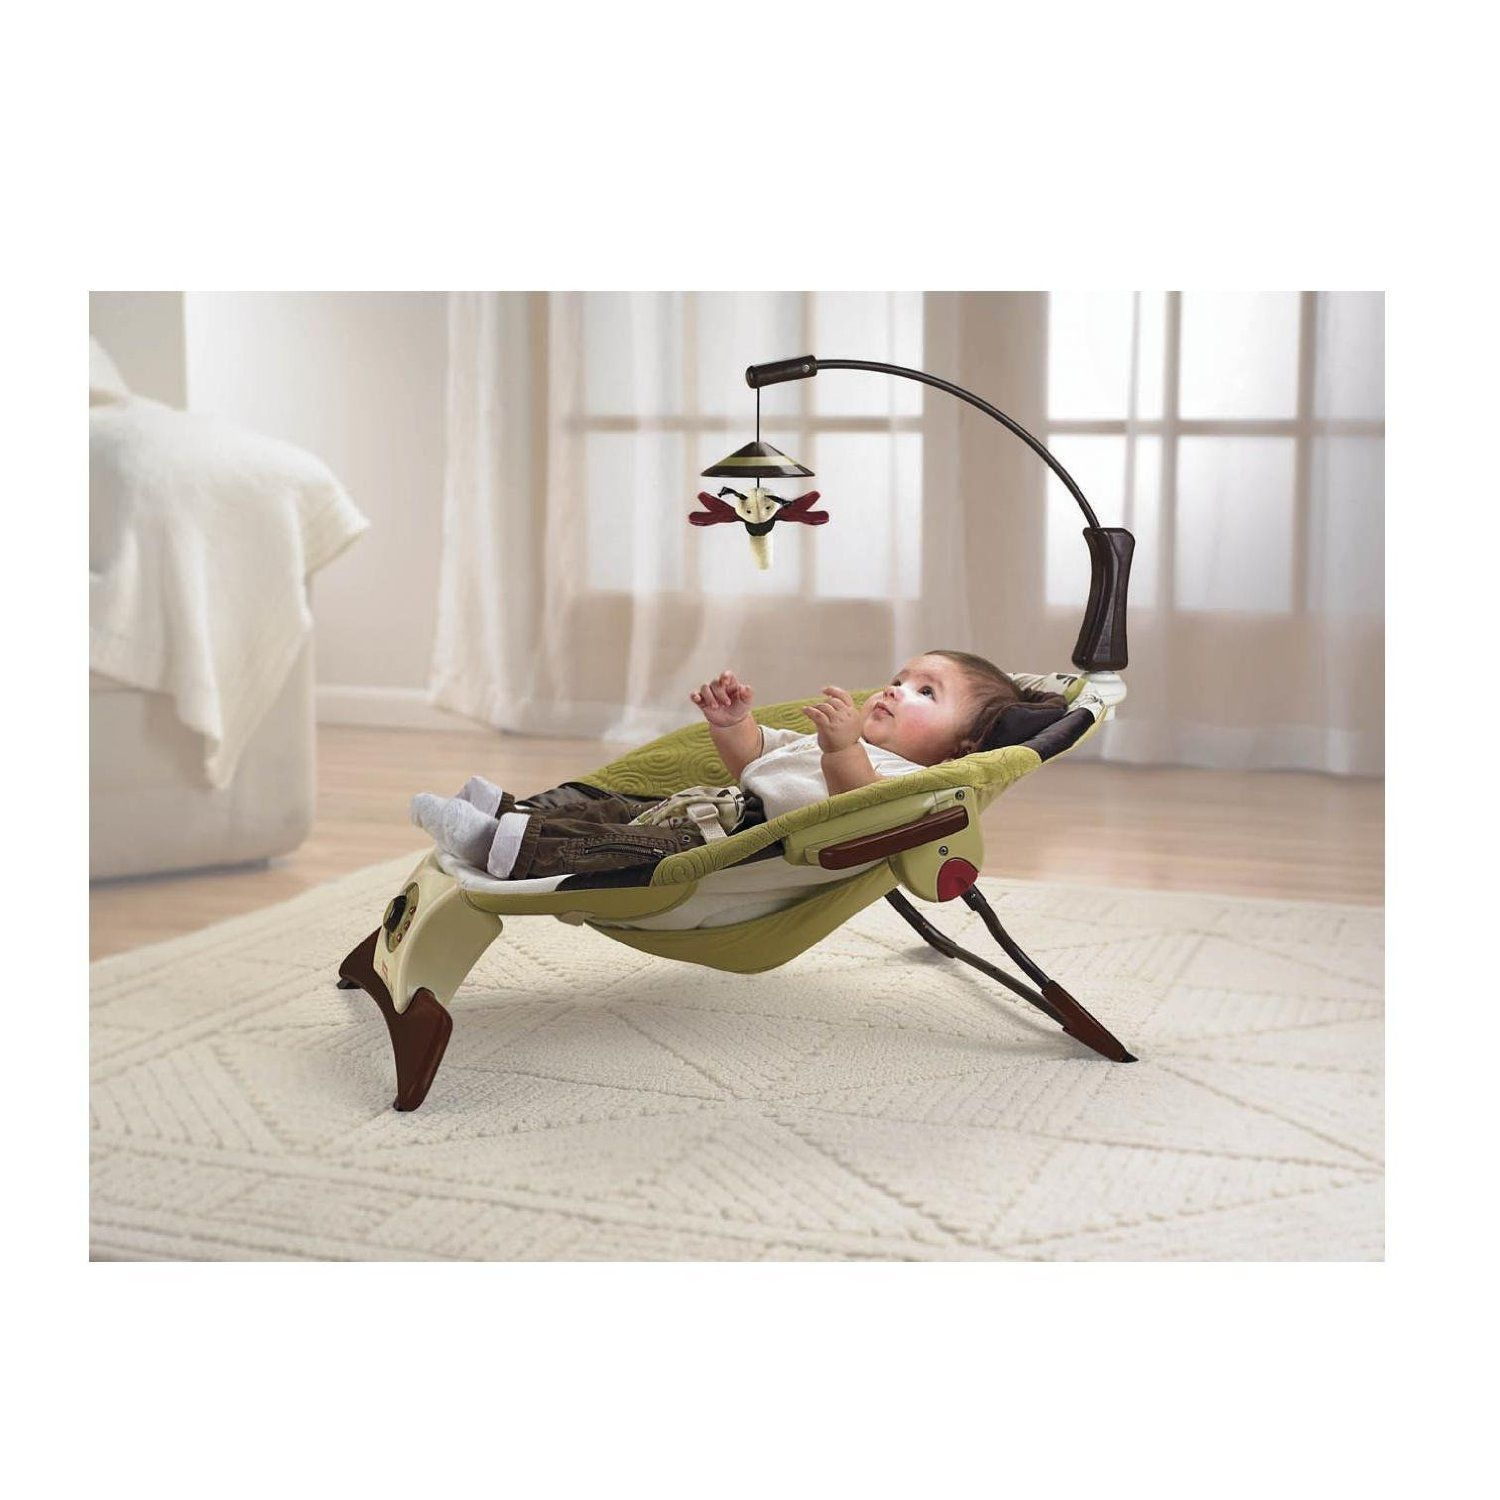 Sleeping like a king baby pinterest infant seat fisher price